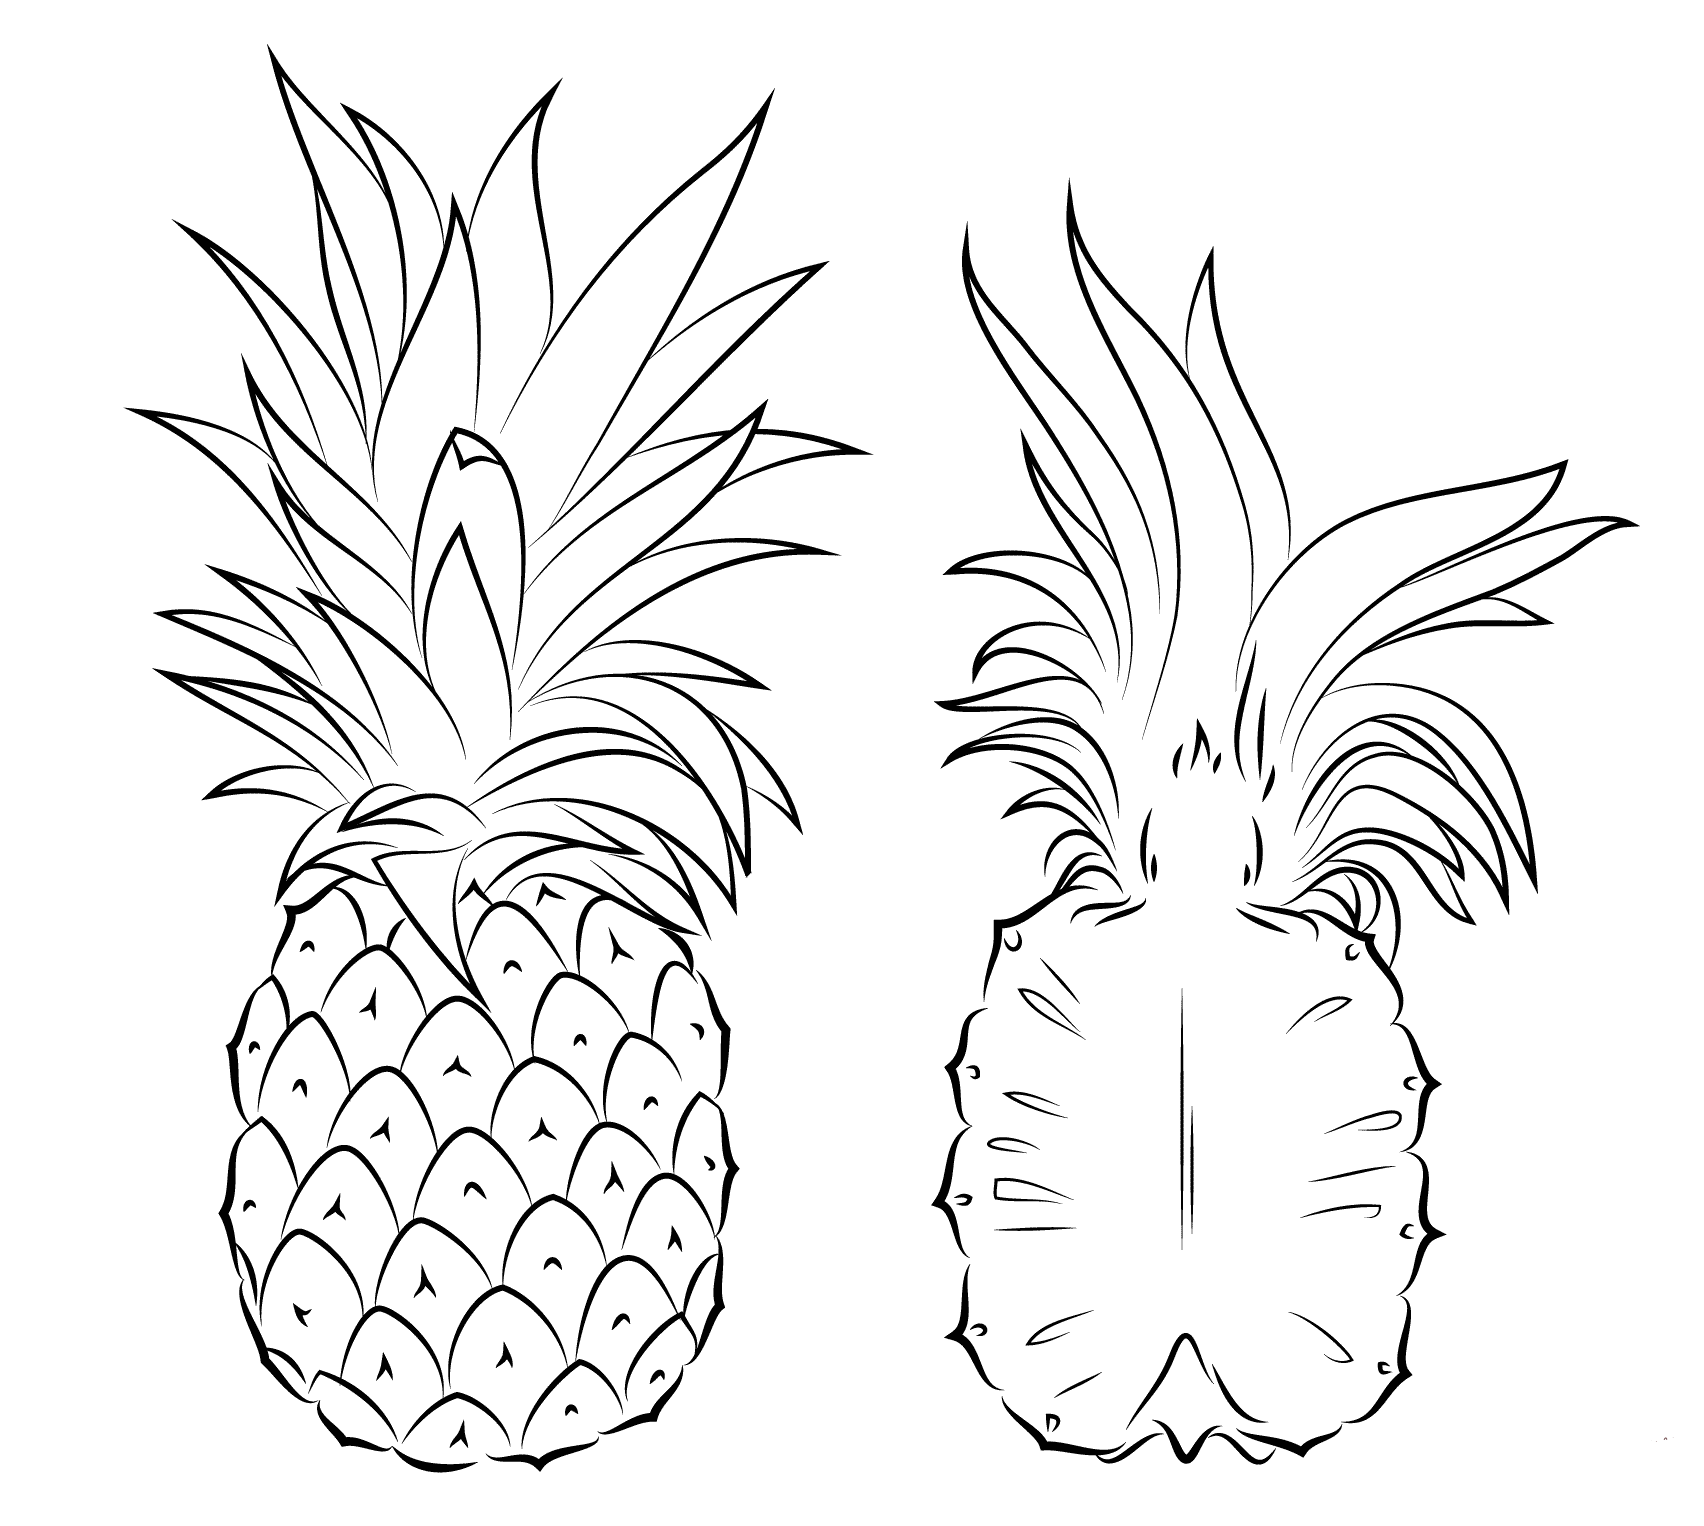 pineapple picture to color printable pineapple coloring pages for kids cool2bkids color picture pineapple to